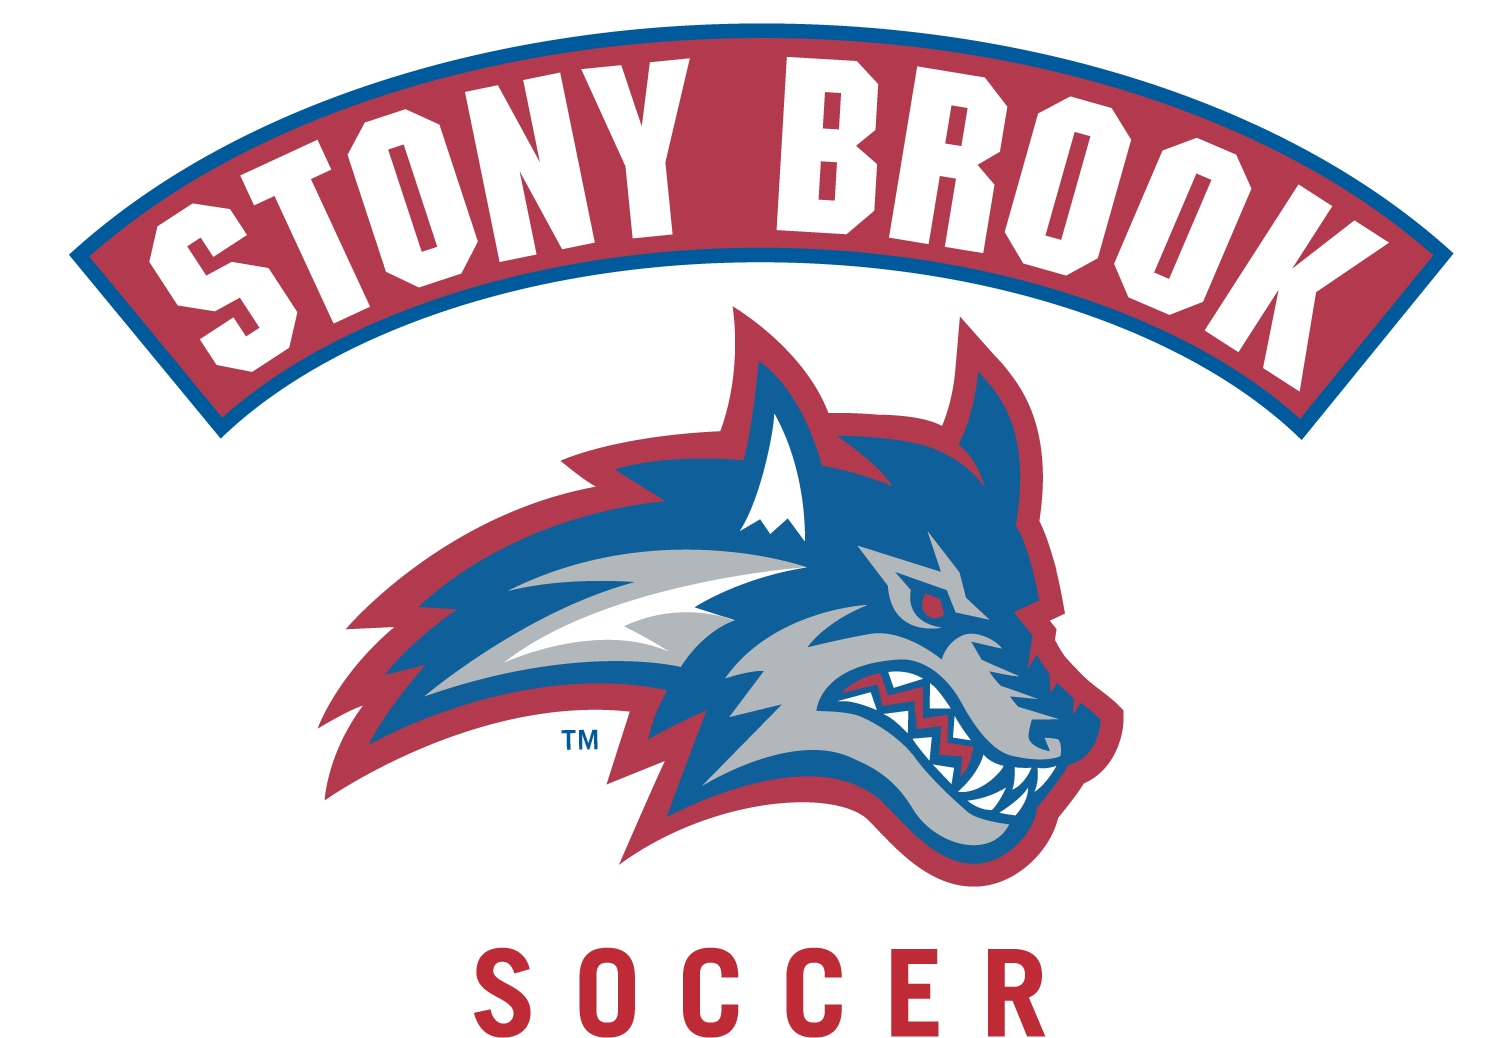 hindu single men in stony brook The latest tweets from stony brook msoc (@stonybrookmsoc) official page of stony brook men's soccer | member of @americaeast | 2011 america east champions | purchase 2017 tickets today.